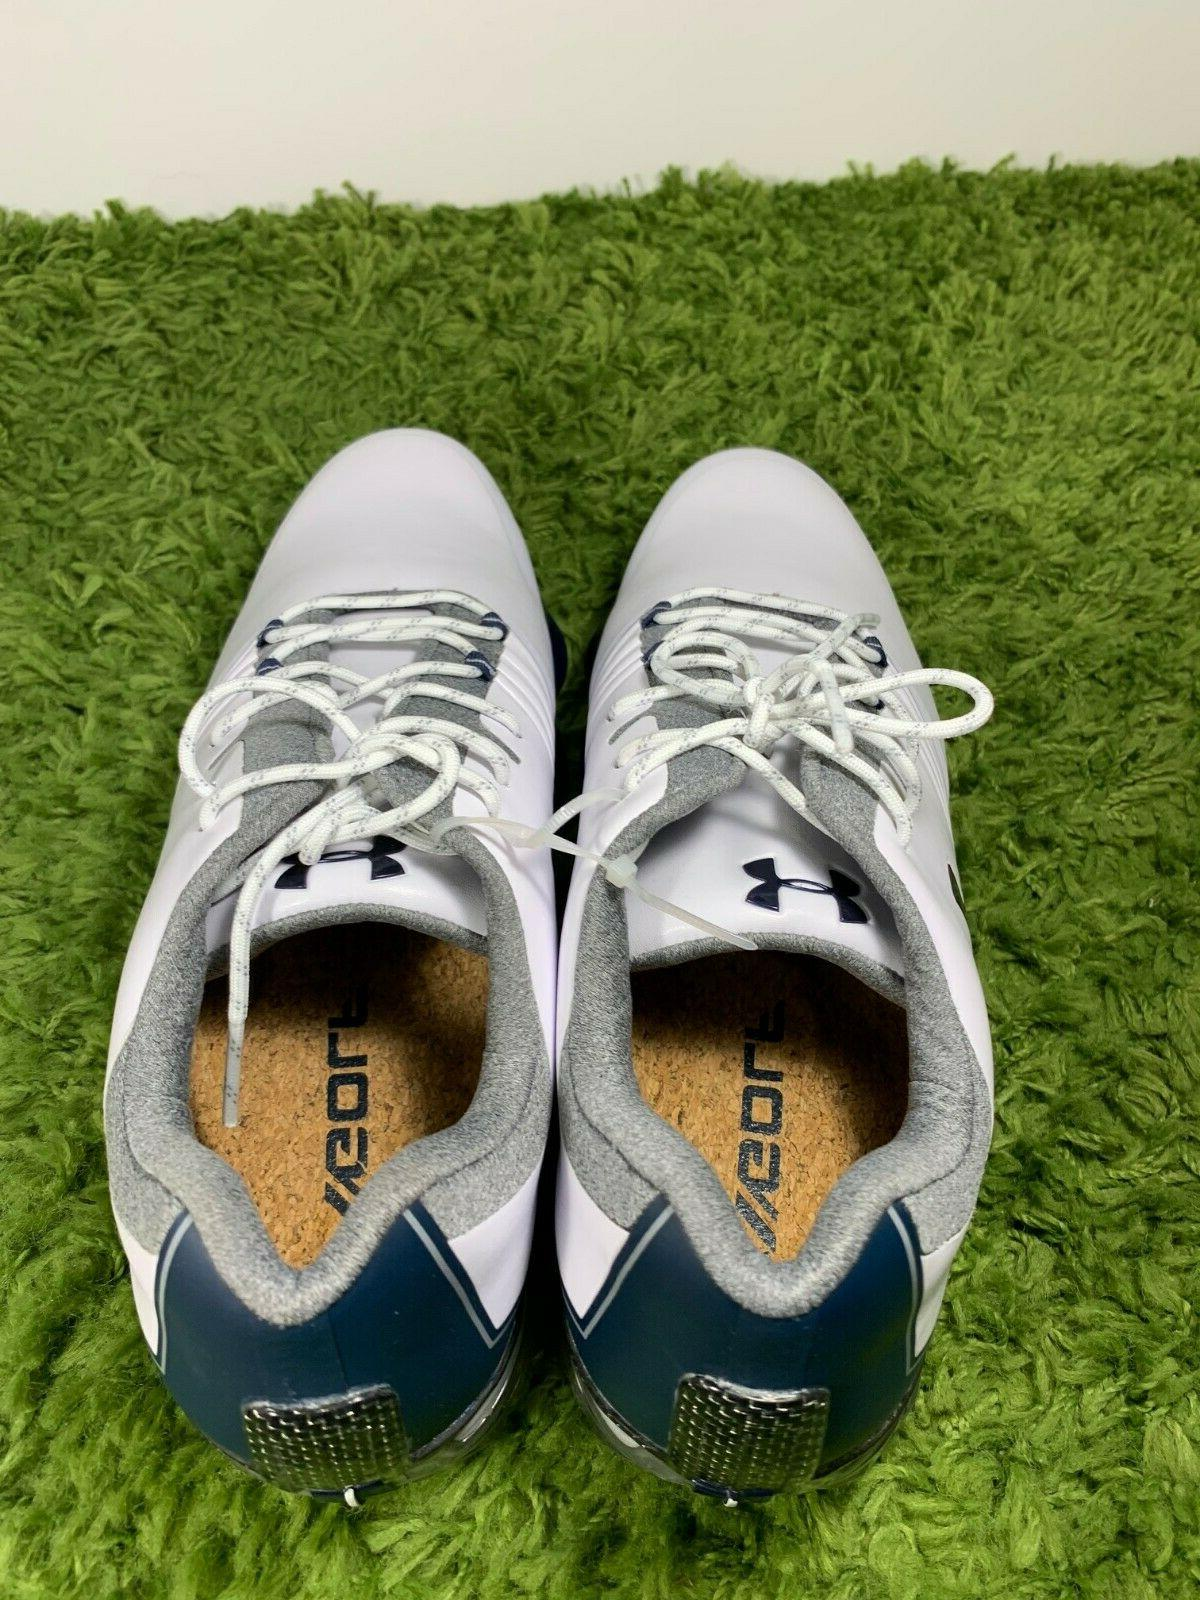 Under Armour Spieth UA Match Play 10 Navy Blue Shoes 3019893-104